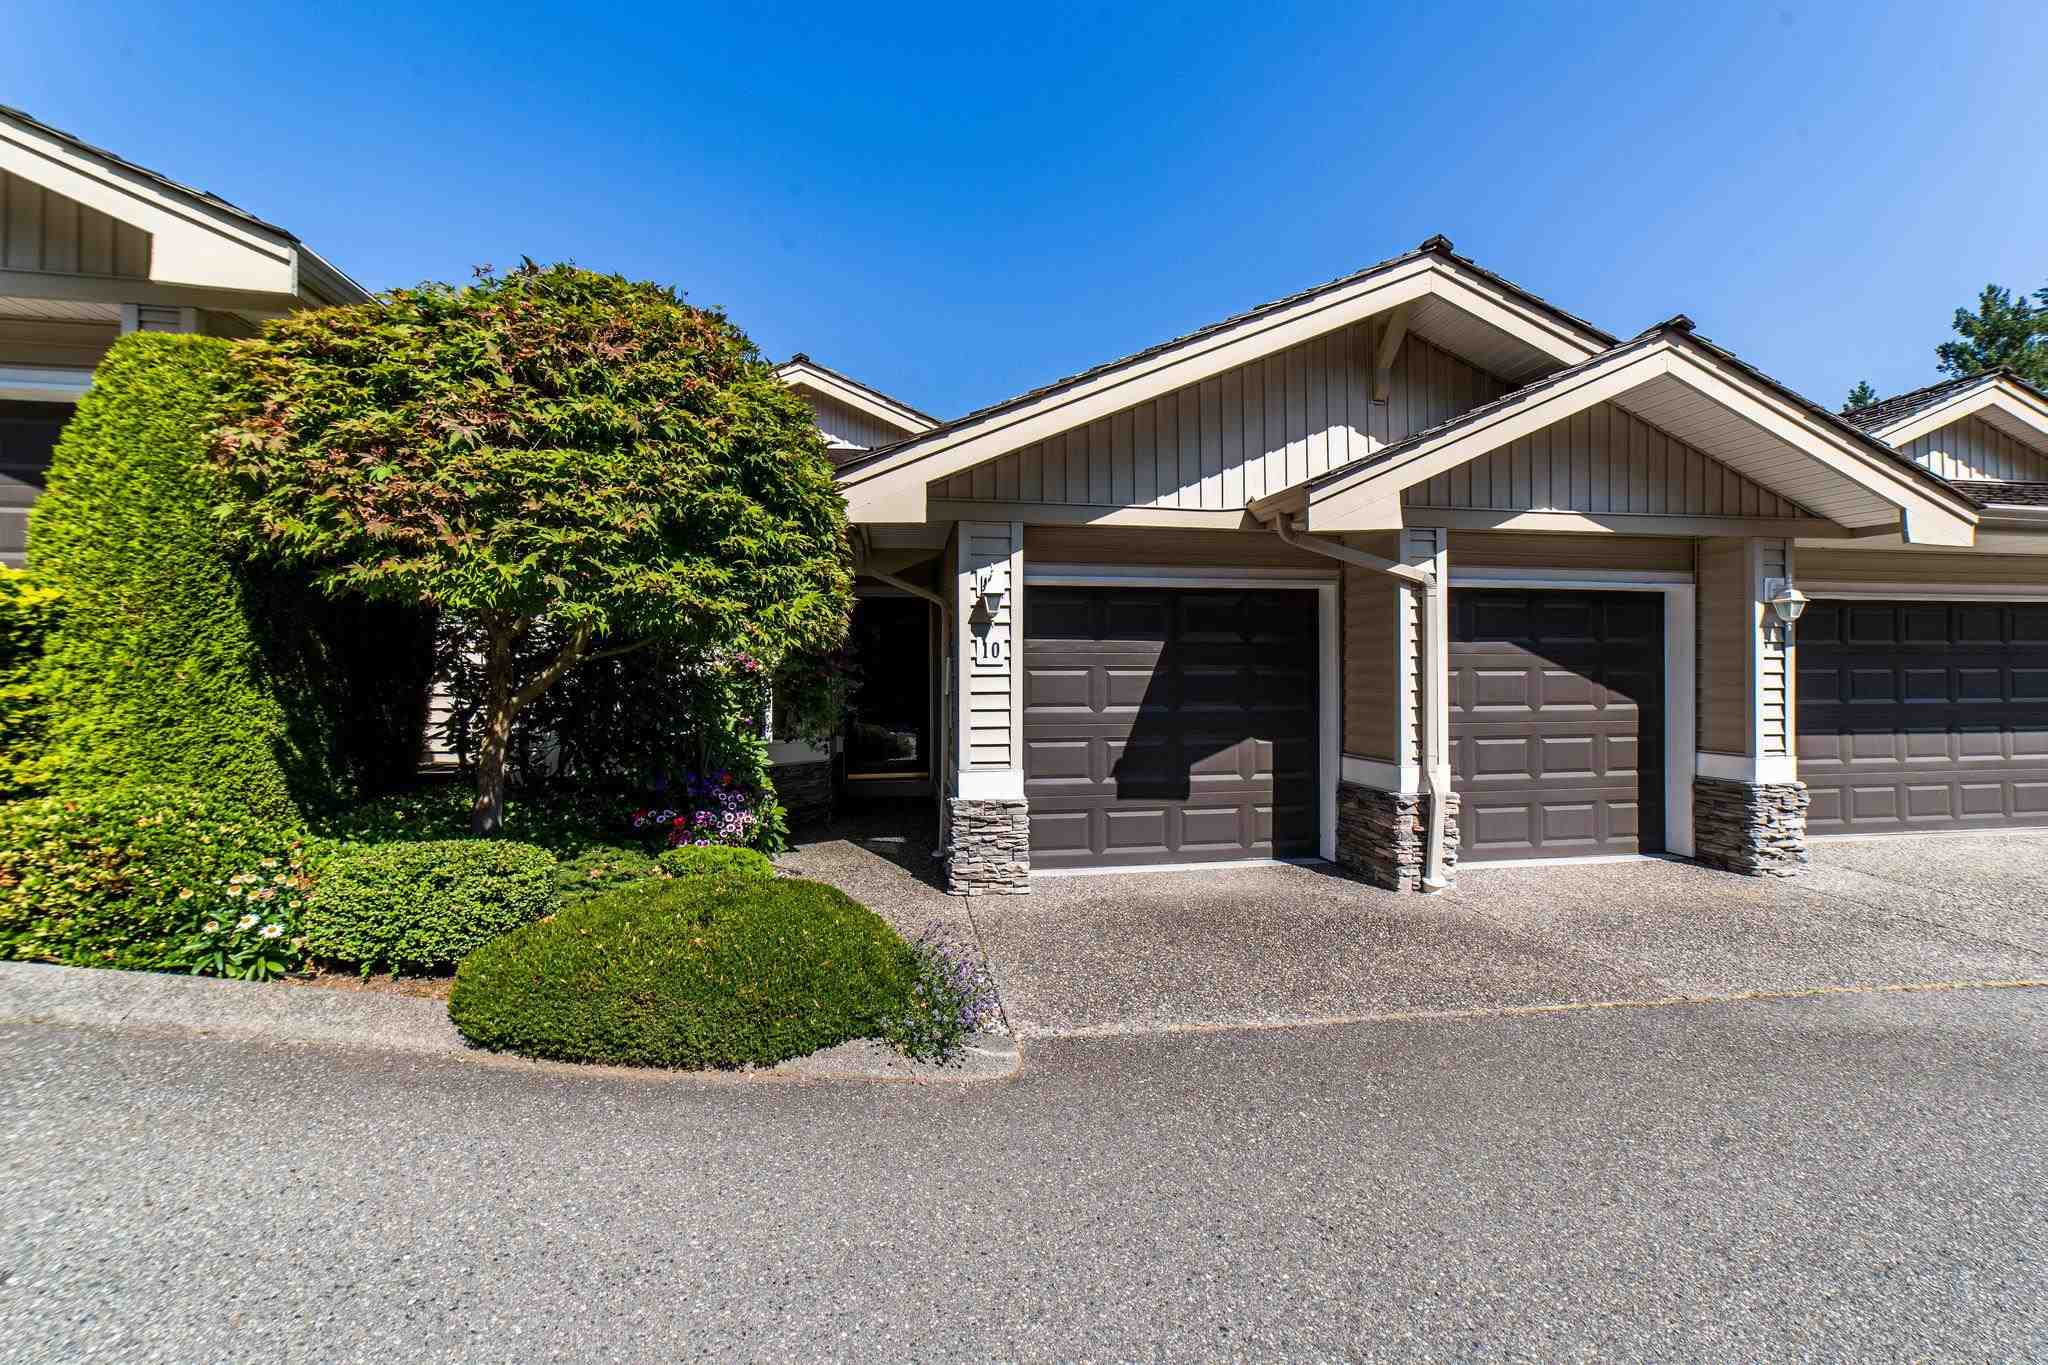 10 35537 EAGLE MOUNTAIN DRIVE - Abbotsford East Townhouse for sale, 3 Bedrooms (R2602697) - #1